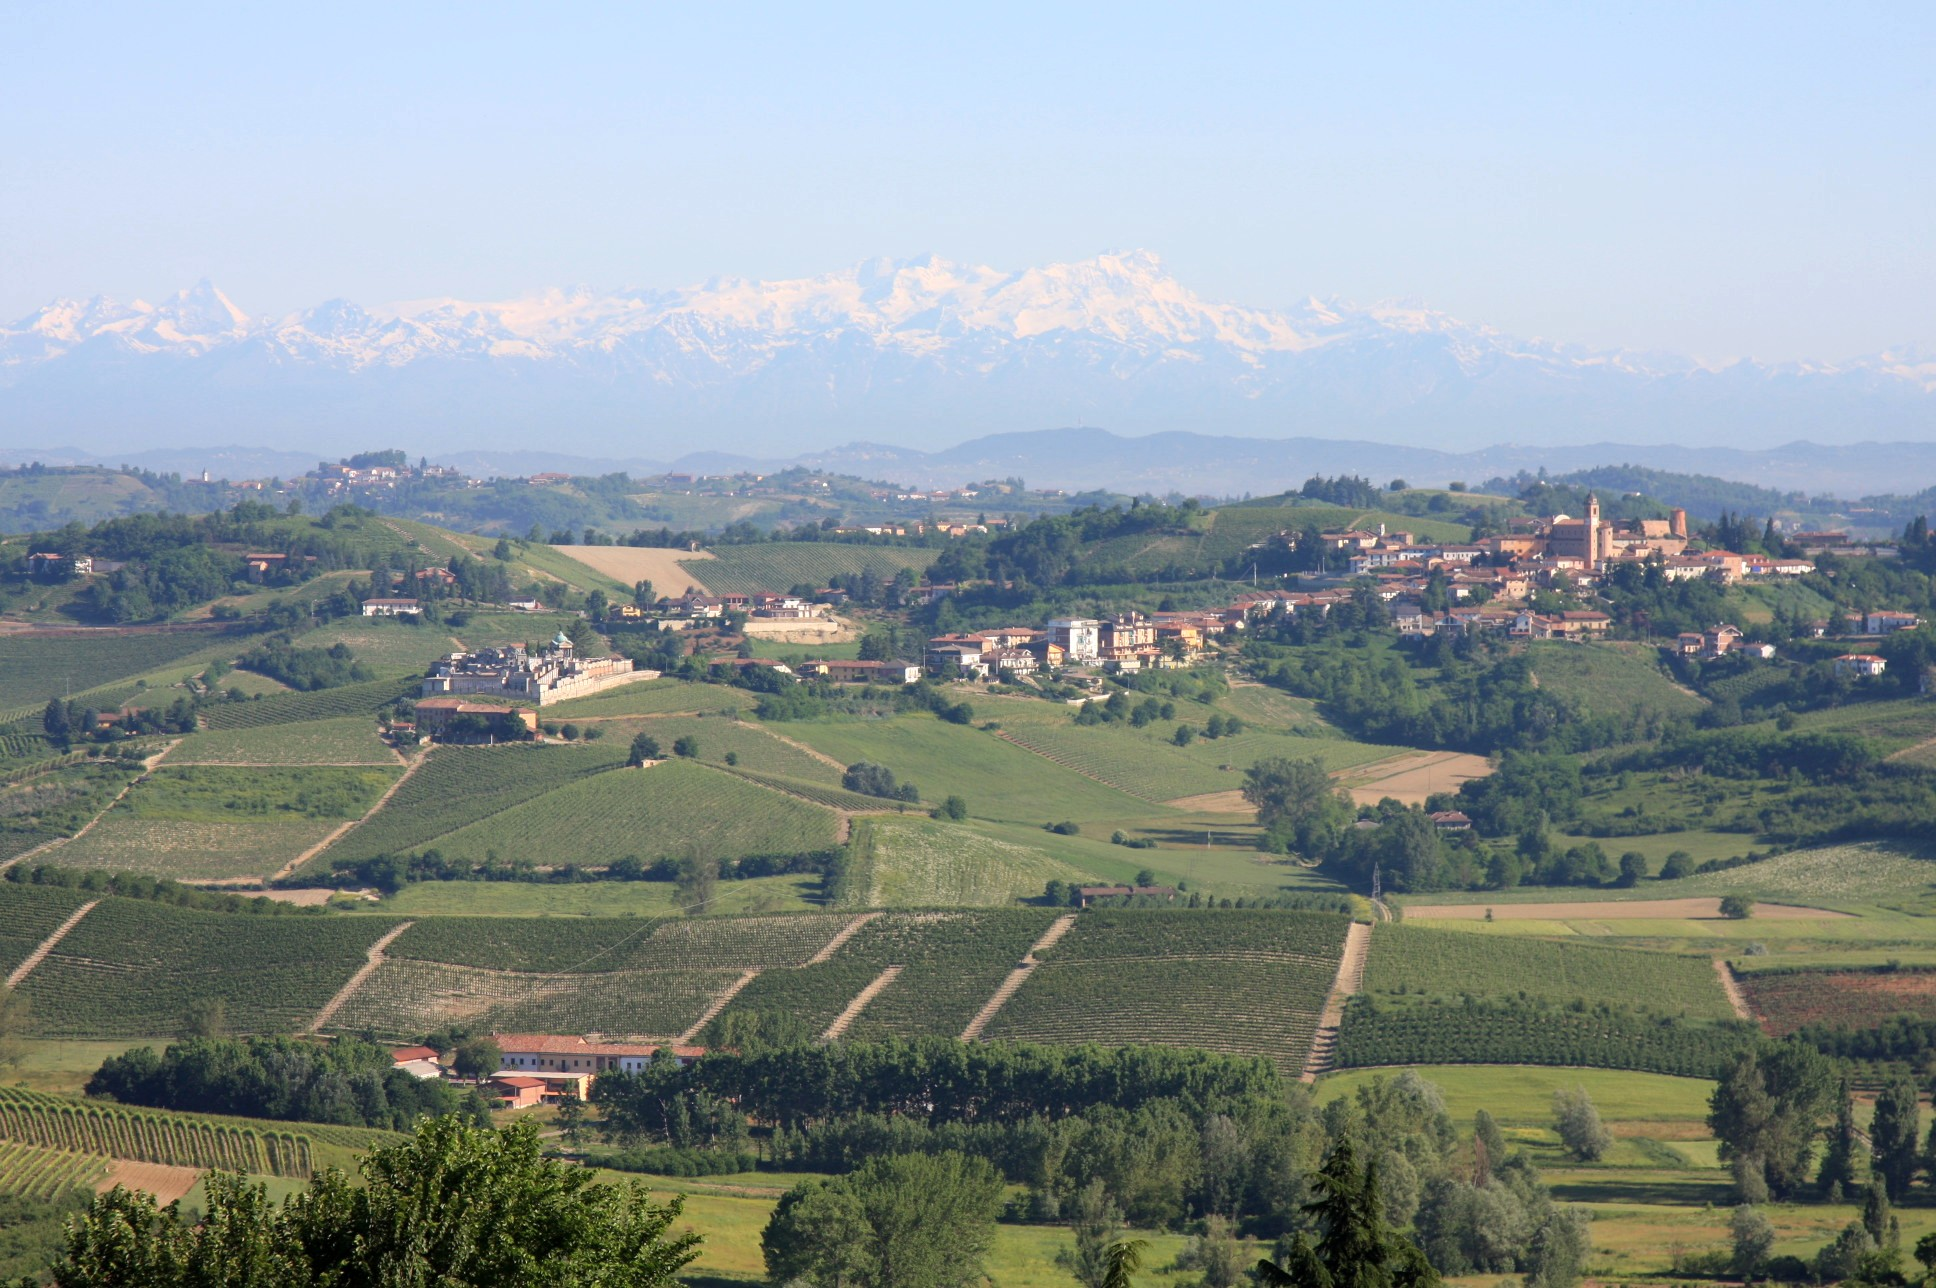 Matterhorn, Monte Rosa, and Castelnuovo Calcea in Piedmont's Wine Region